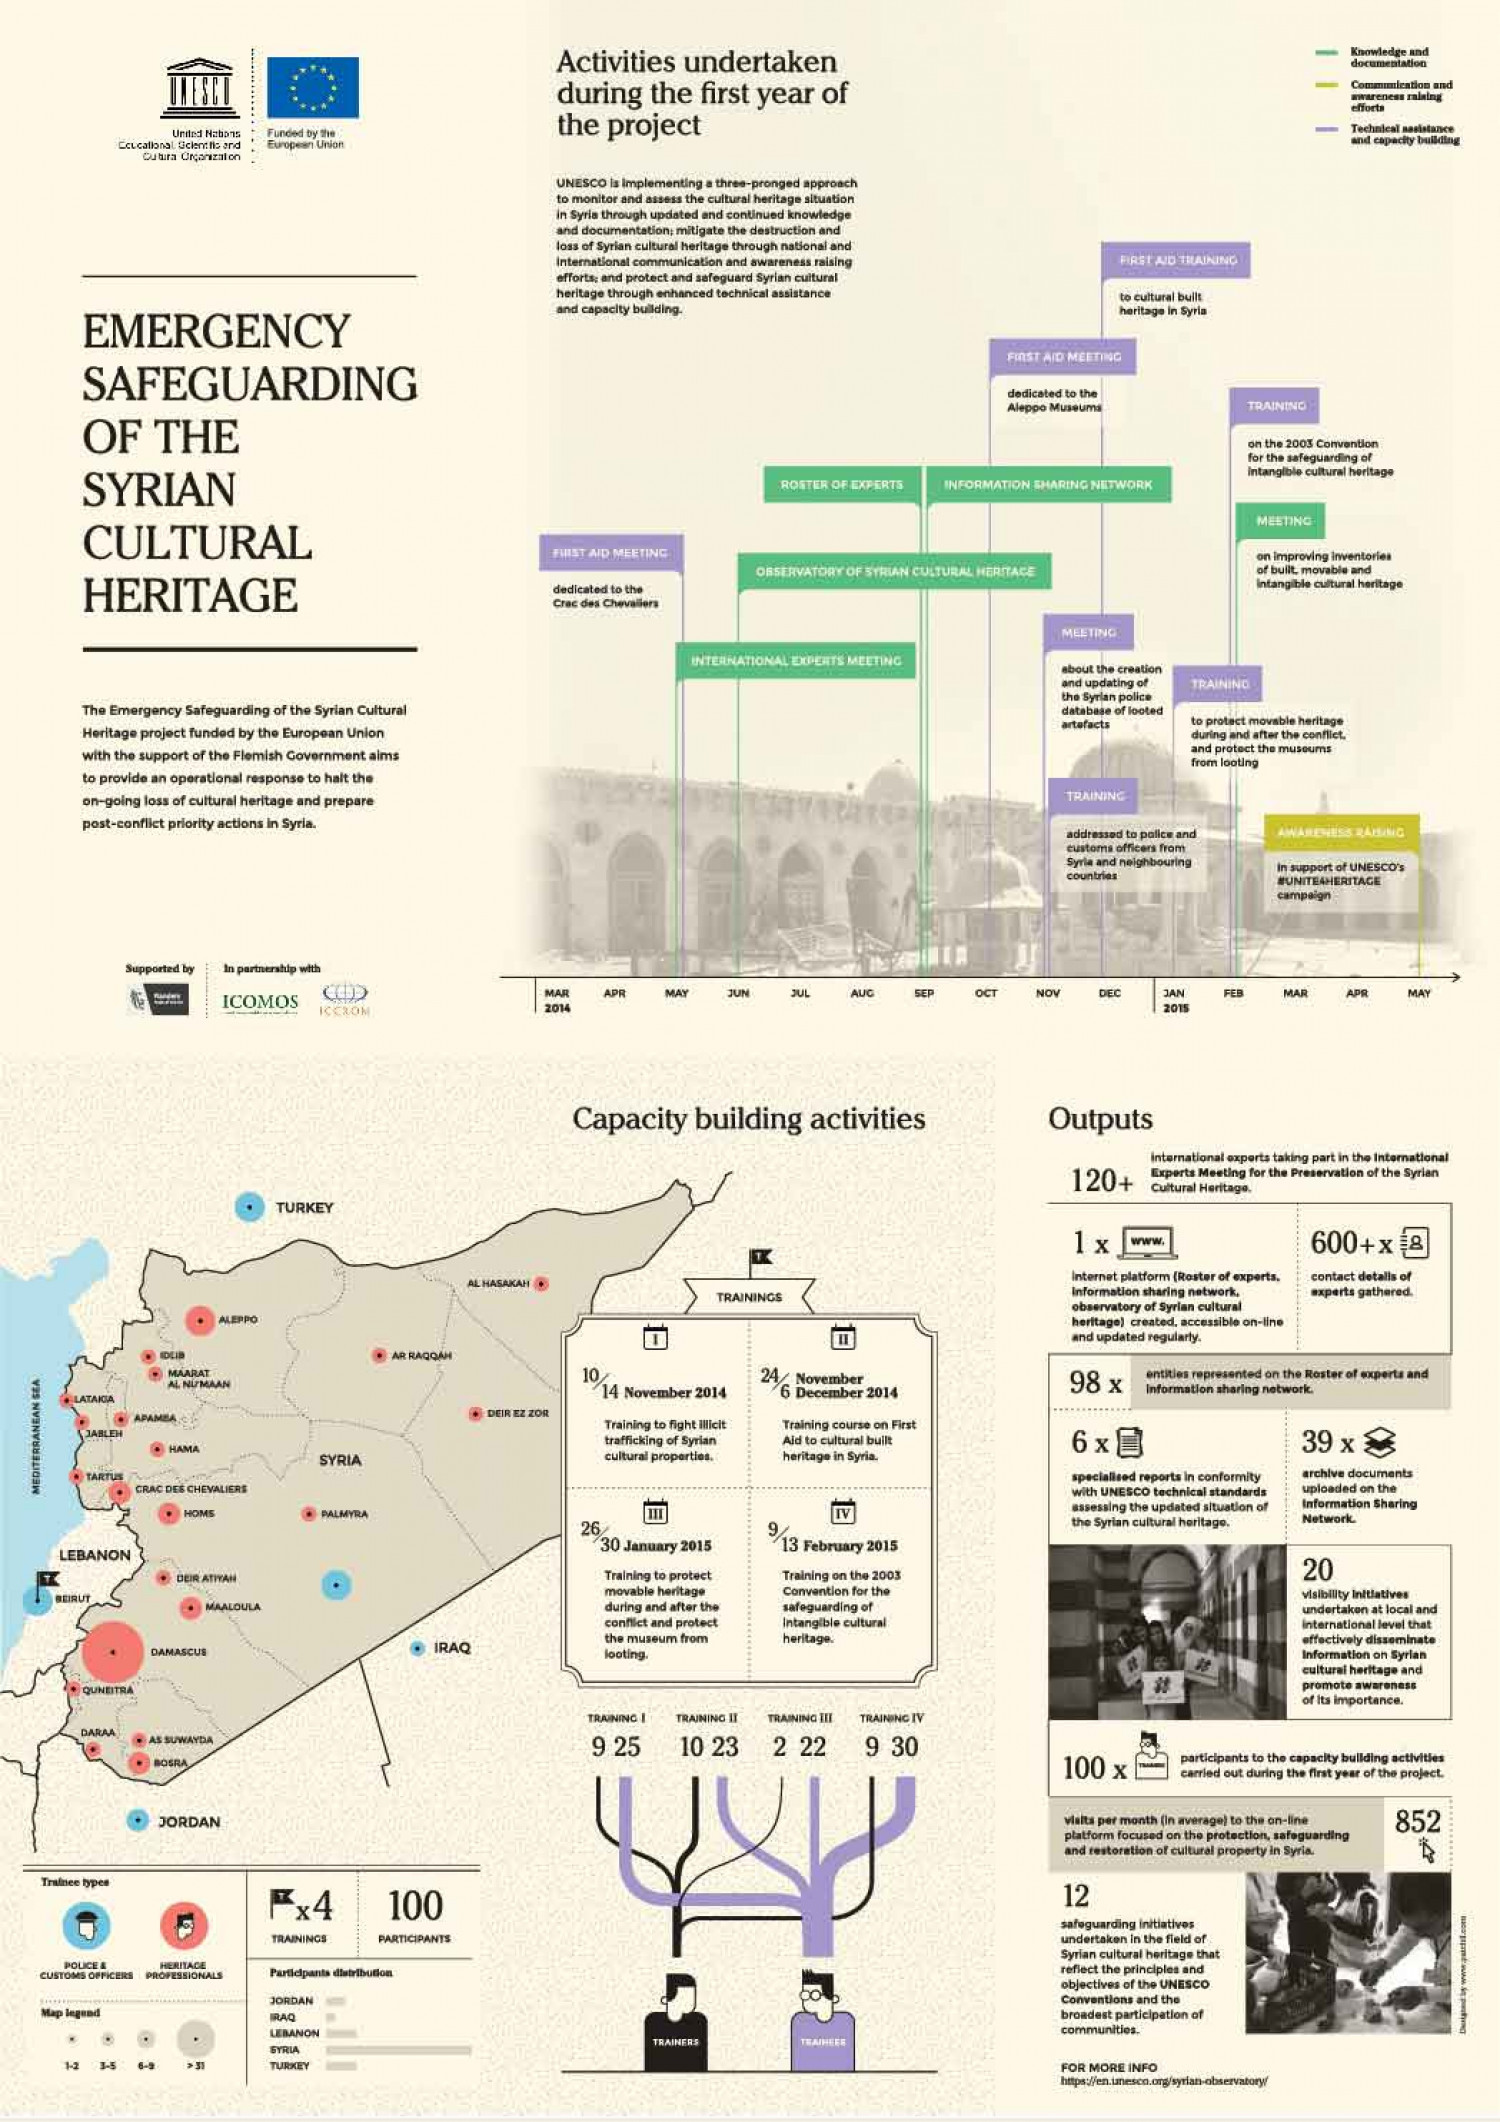 Safeguarding cultural heritage in Syria Infographic